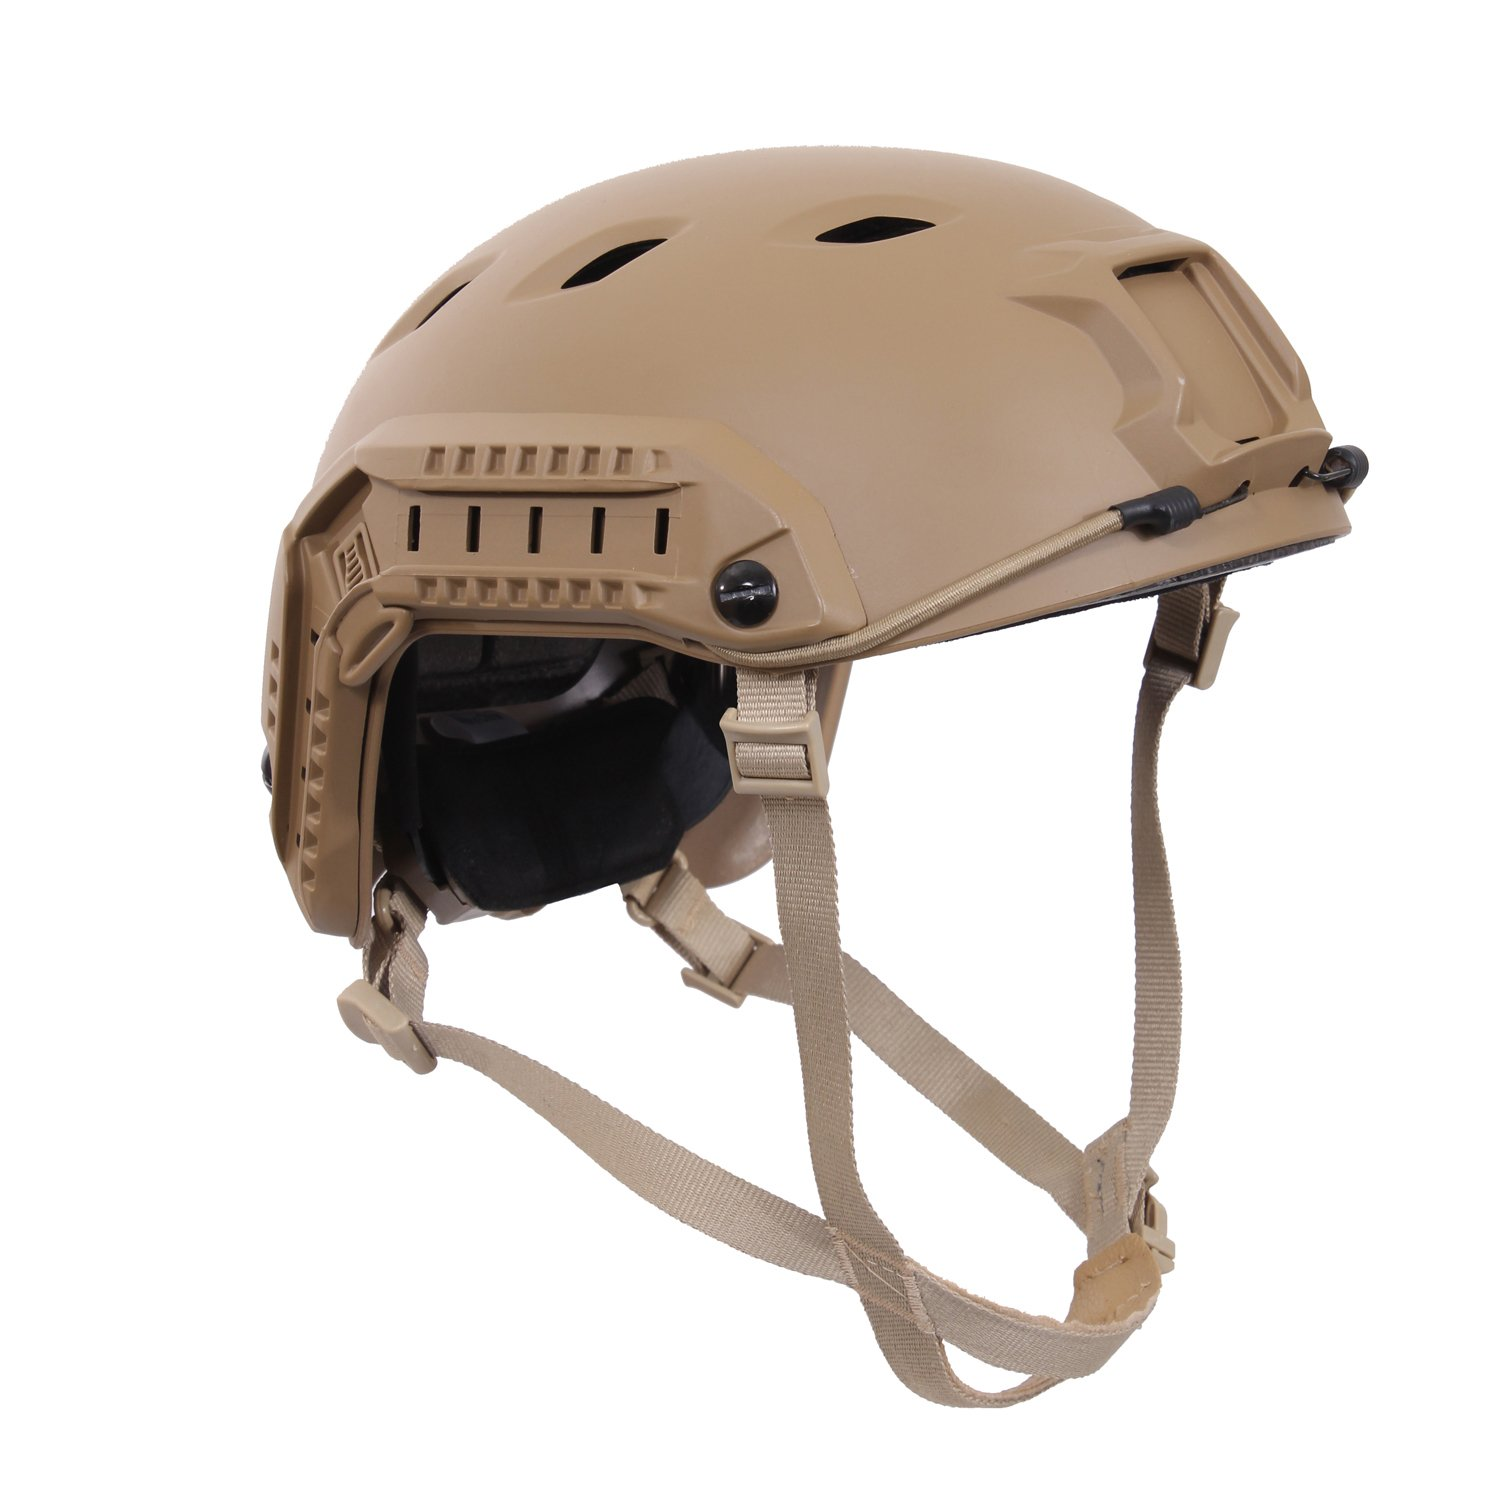 Rothco Advanced Tactical Adjustable Airsoft Helmet, Coyote Brown by Rothco